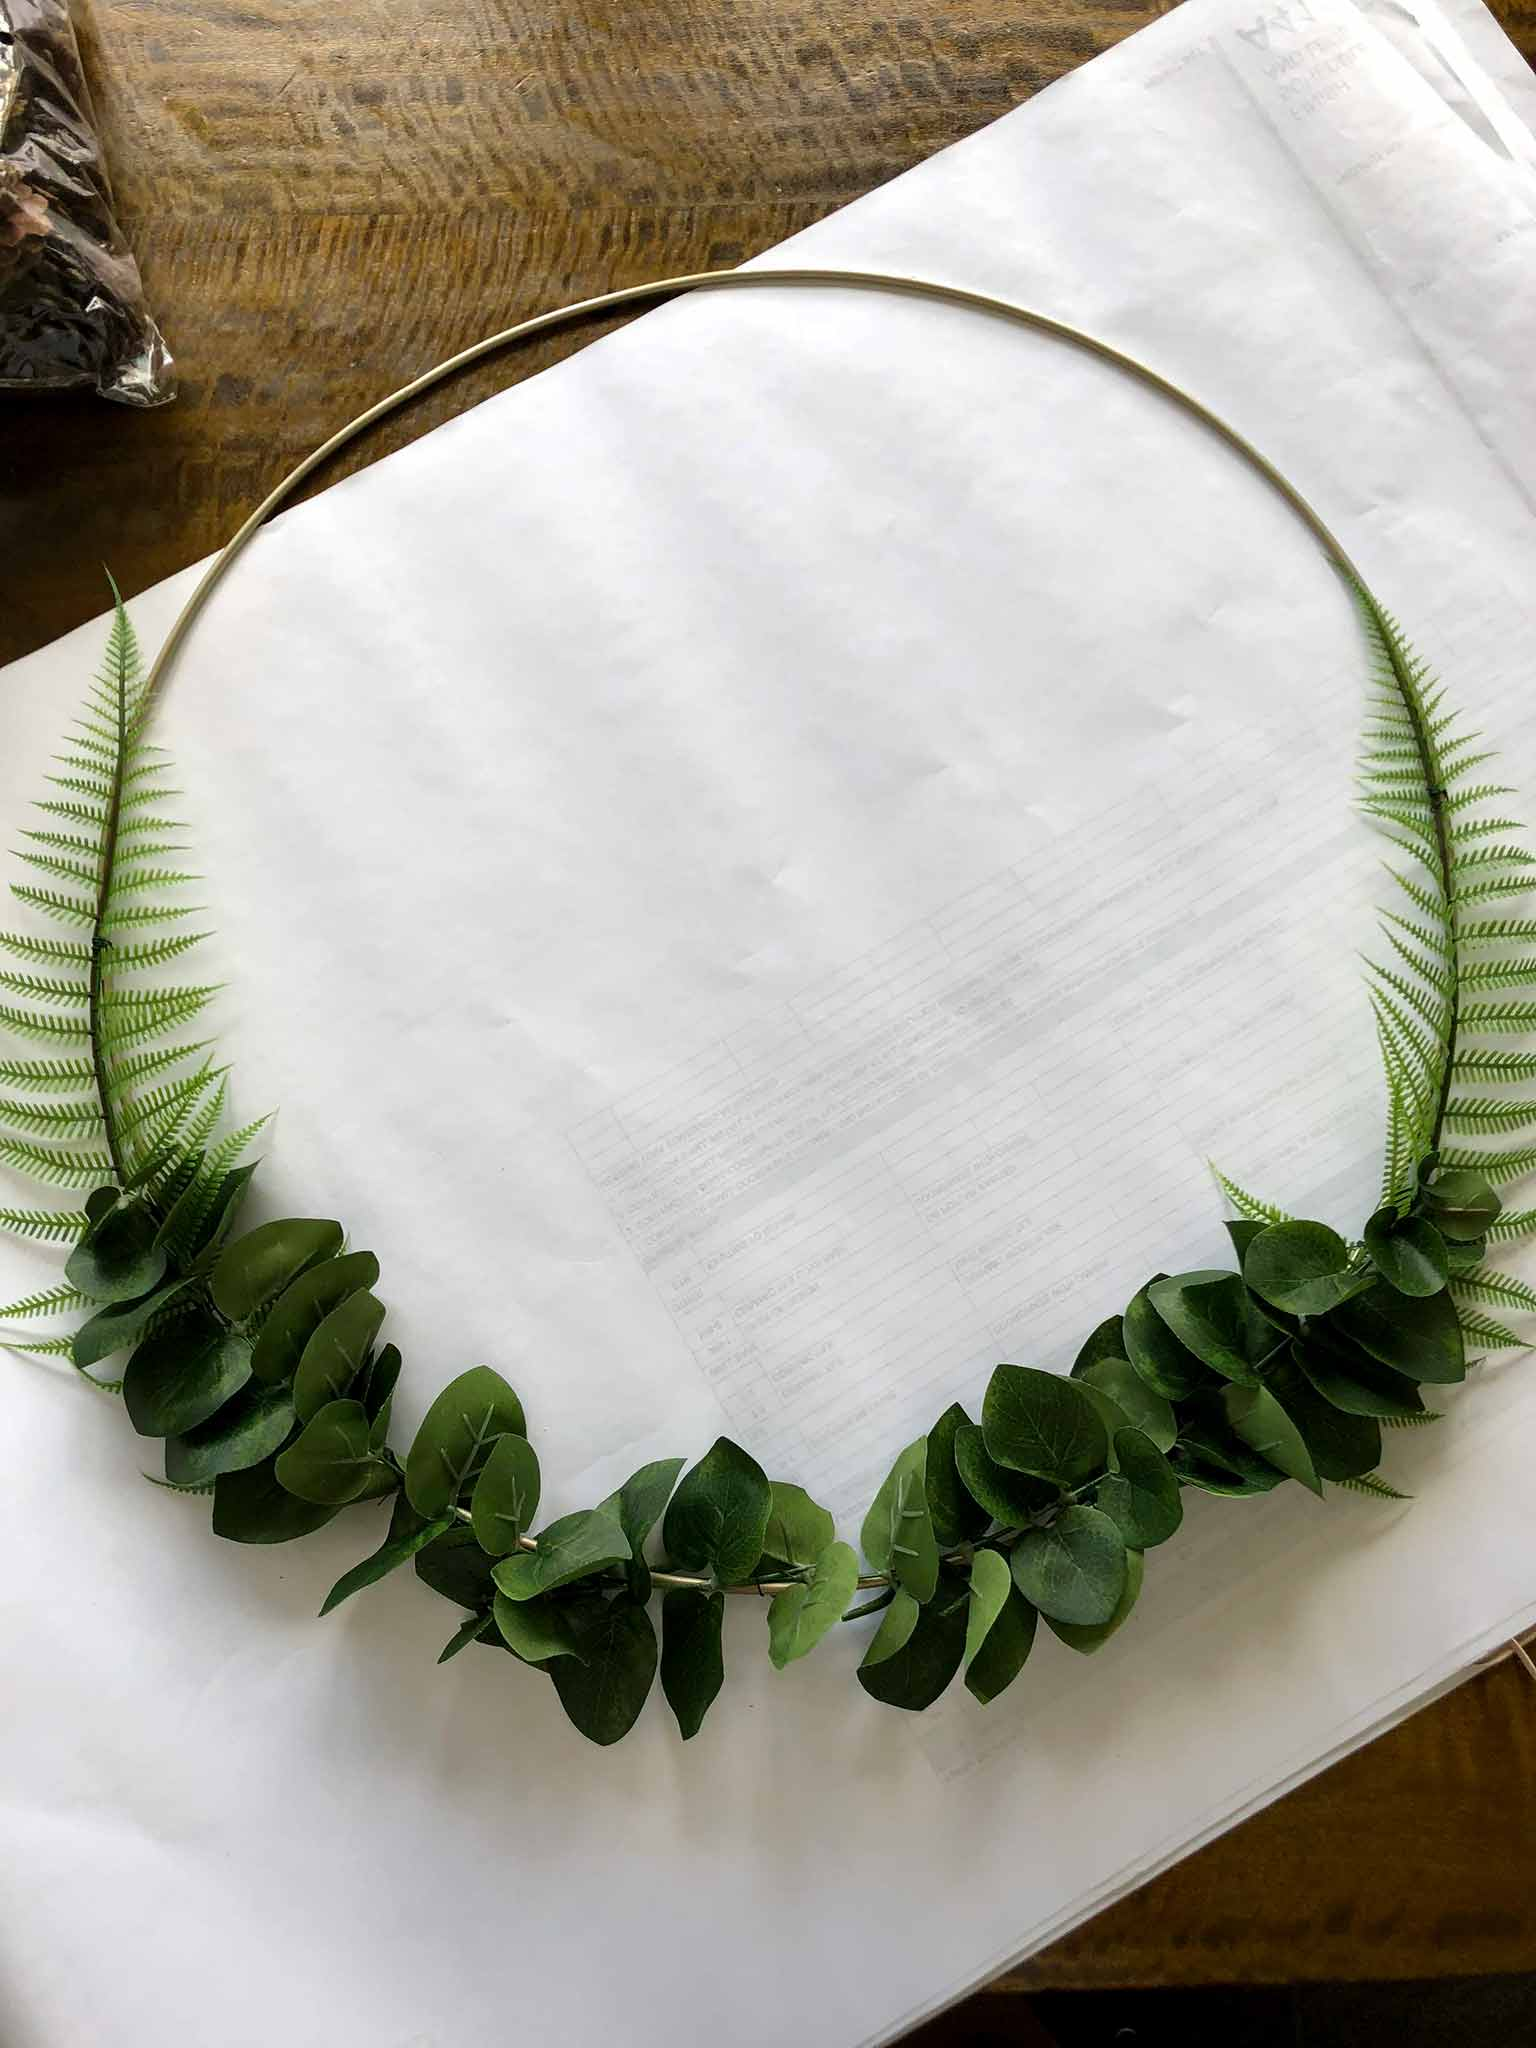 Making the wreath - how to make a minimalist fall wreath - That Homebird Life Blog